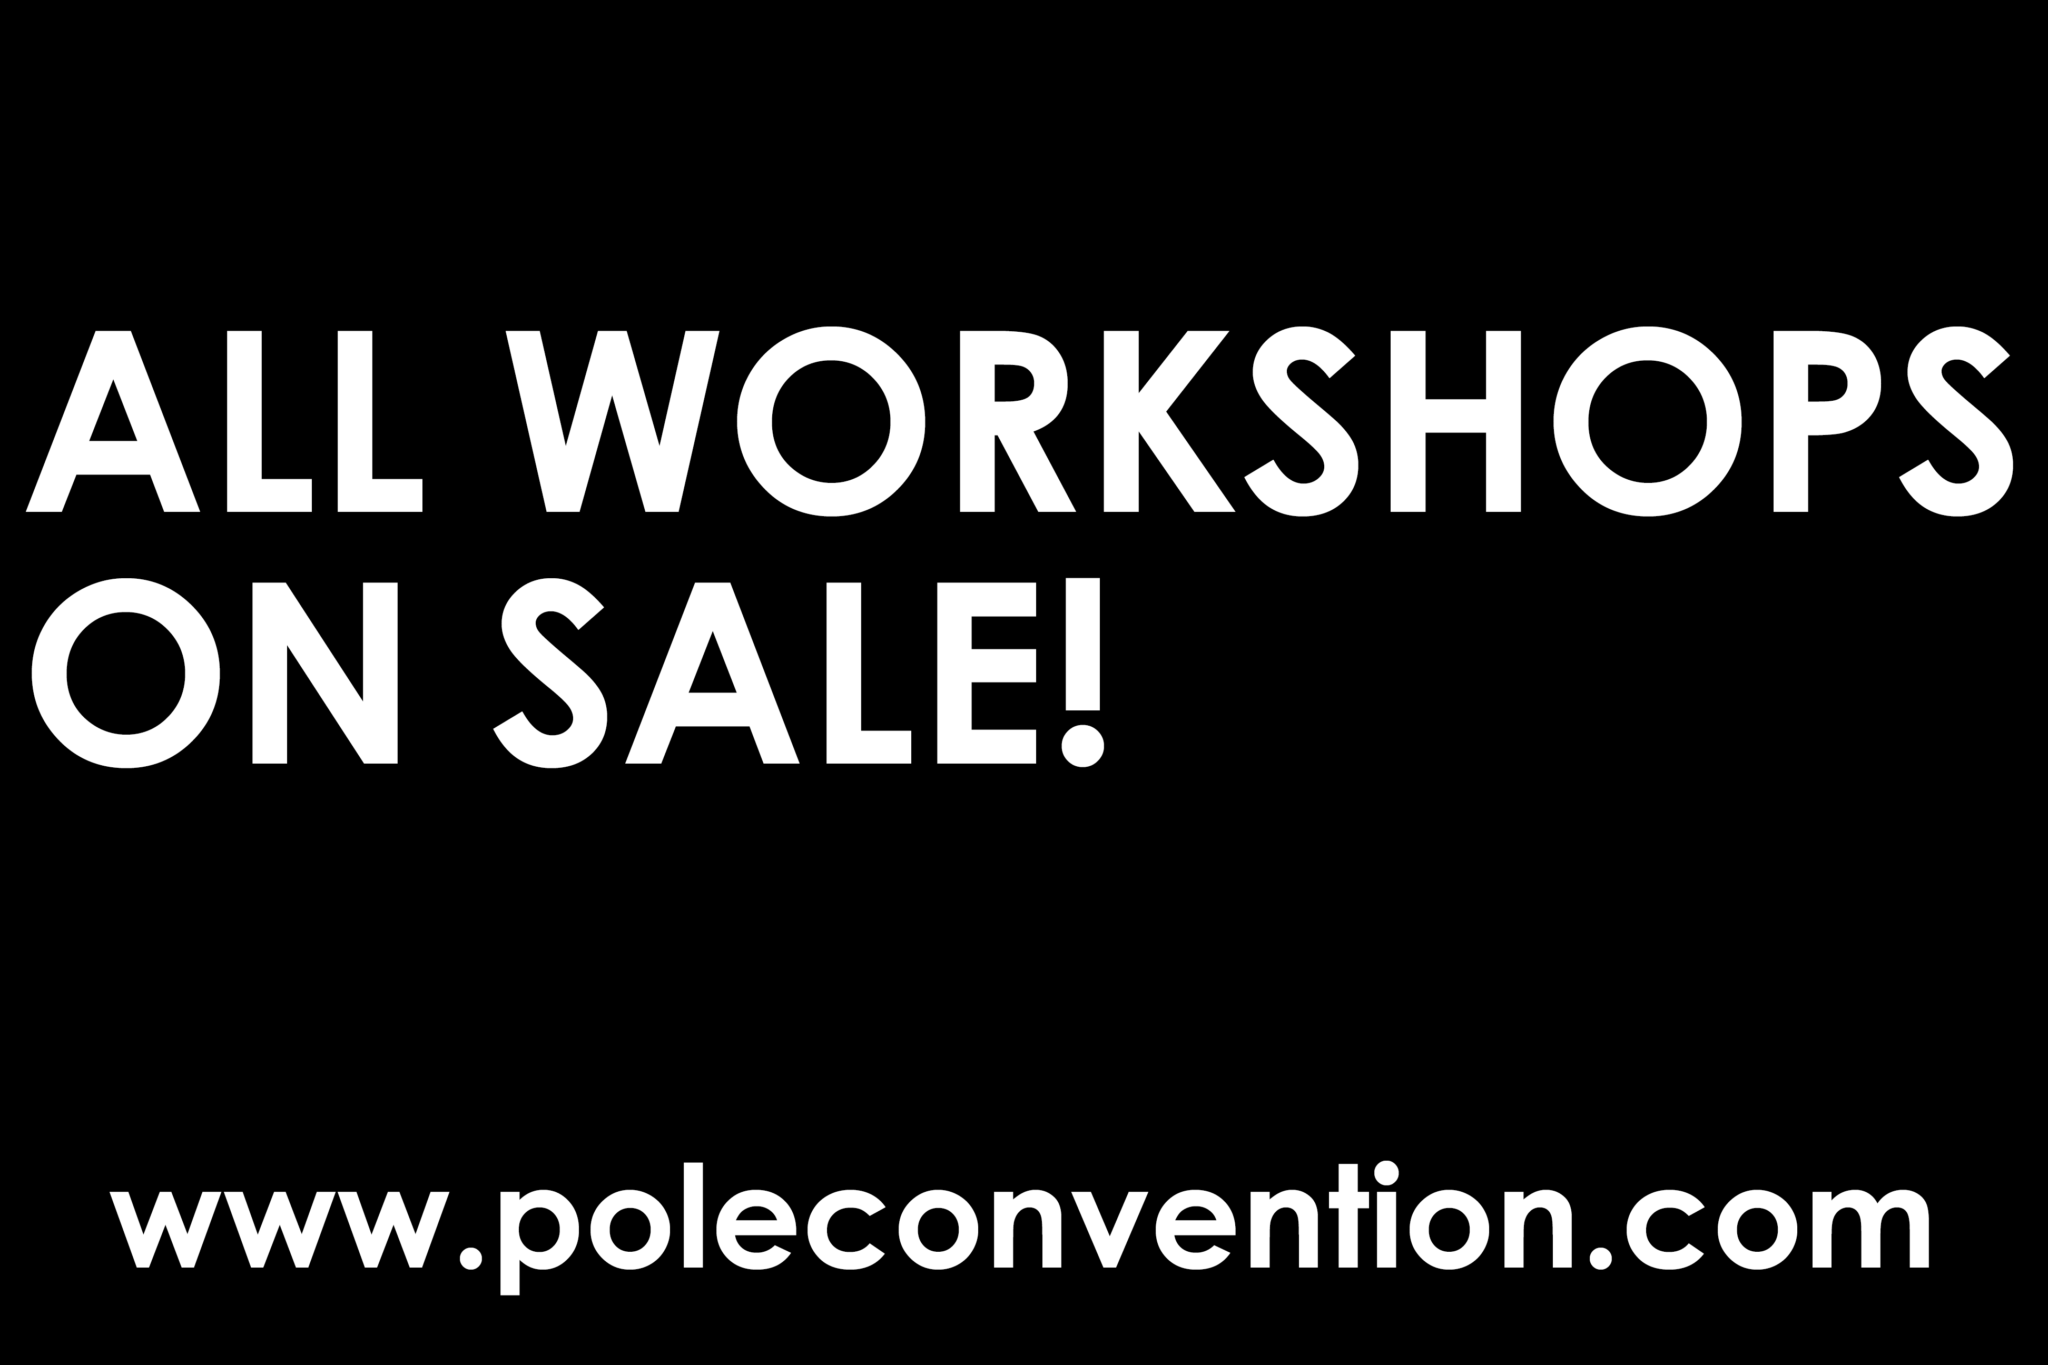 Workshops This Year At PoleCon 2021